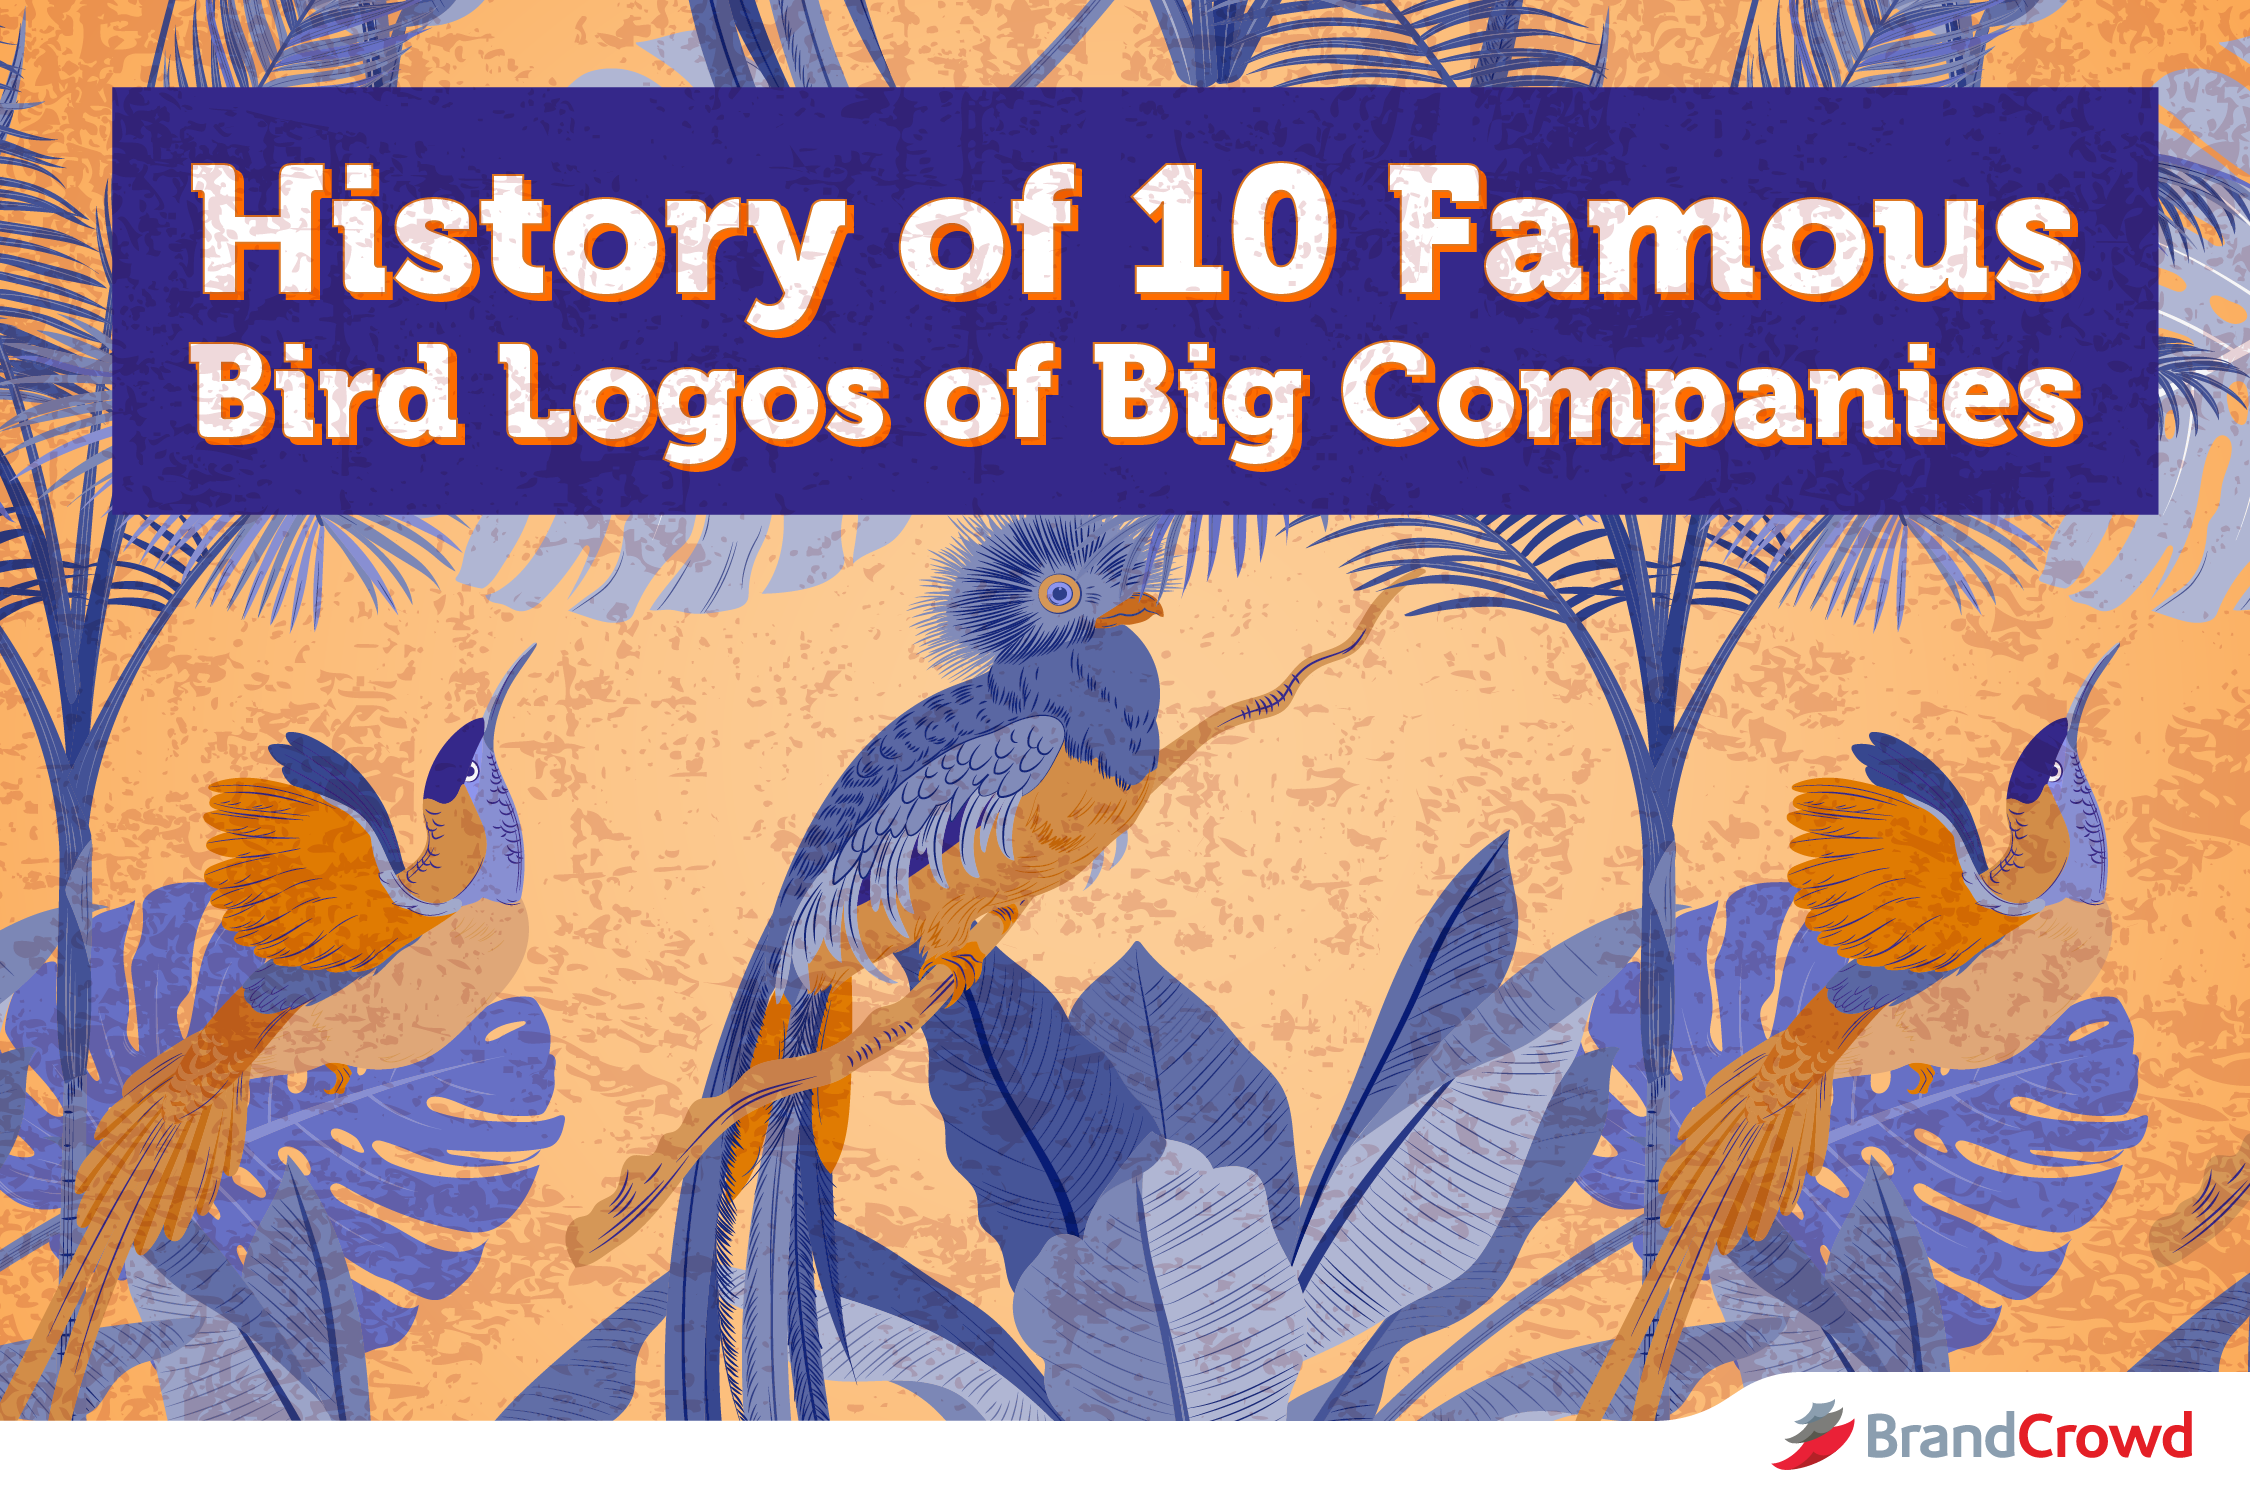 History of 10 Famous Bird Logos of Big Companies - BrandCrowd Blog